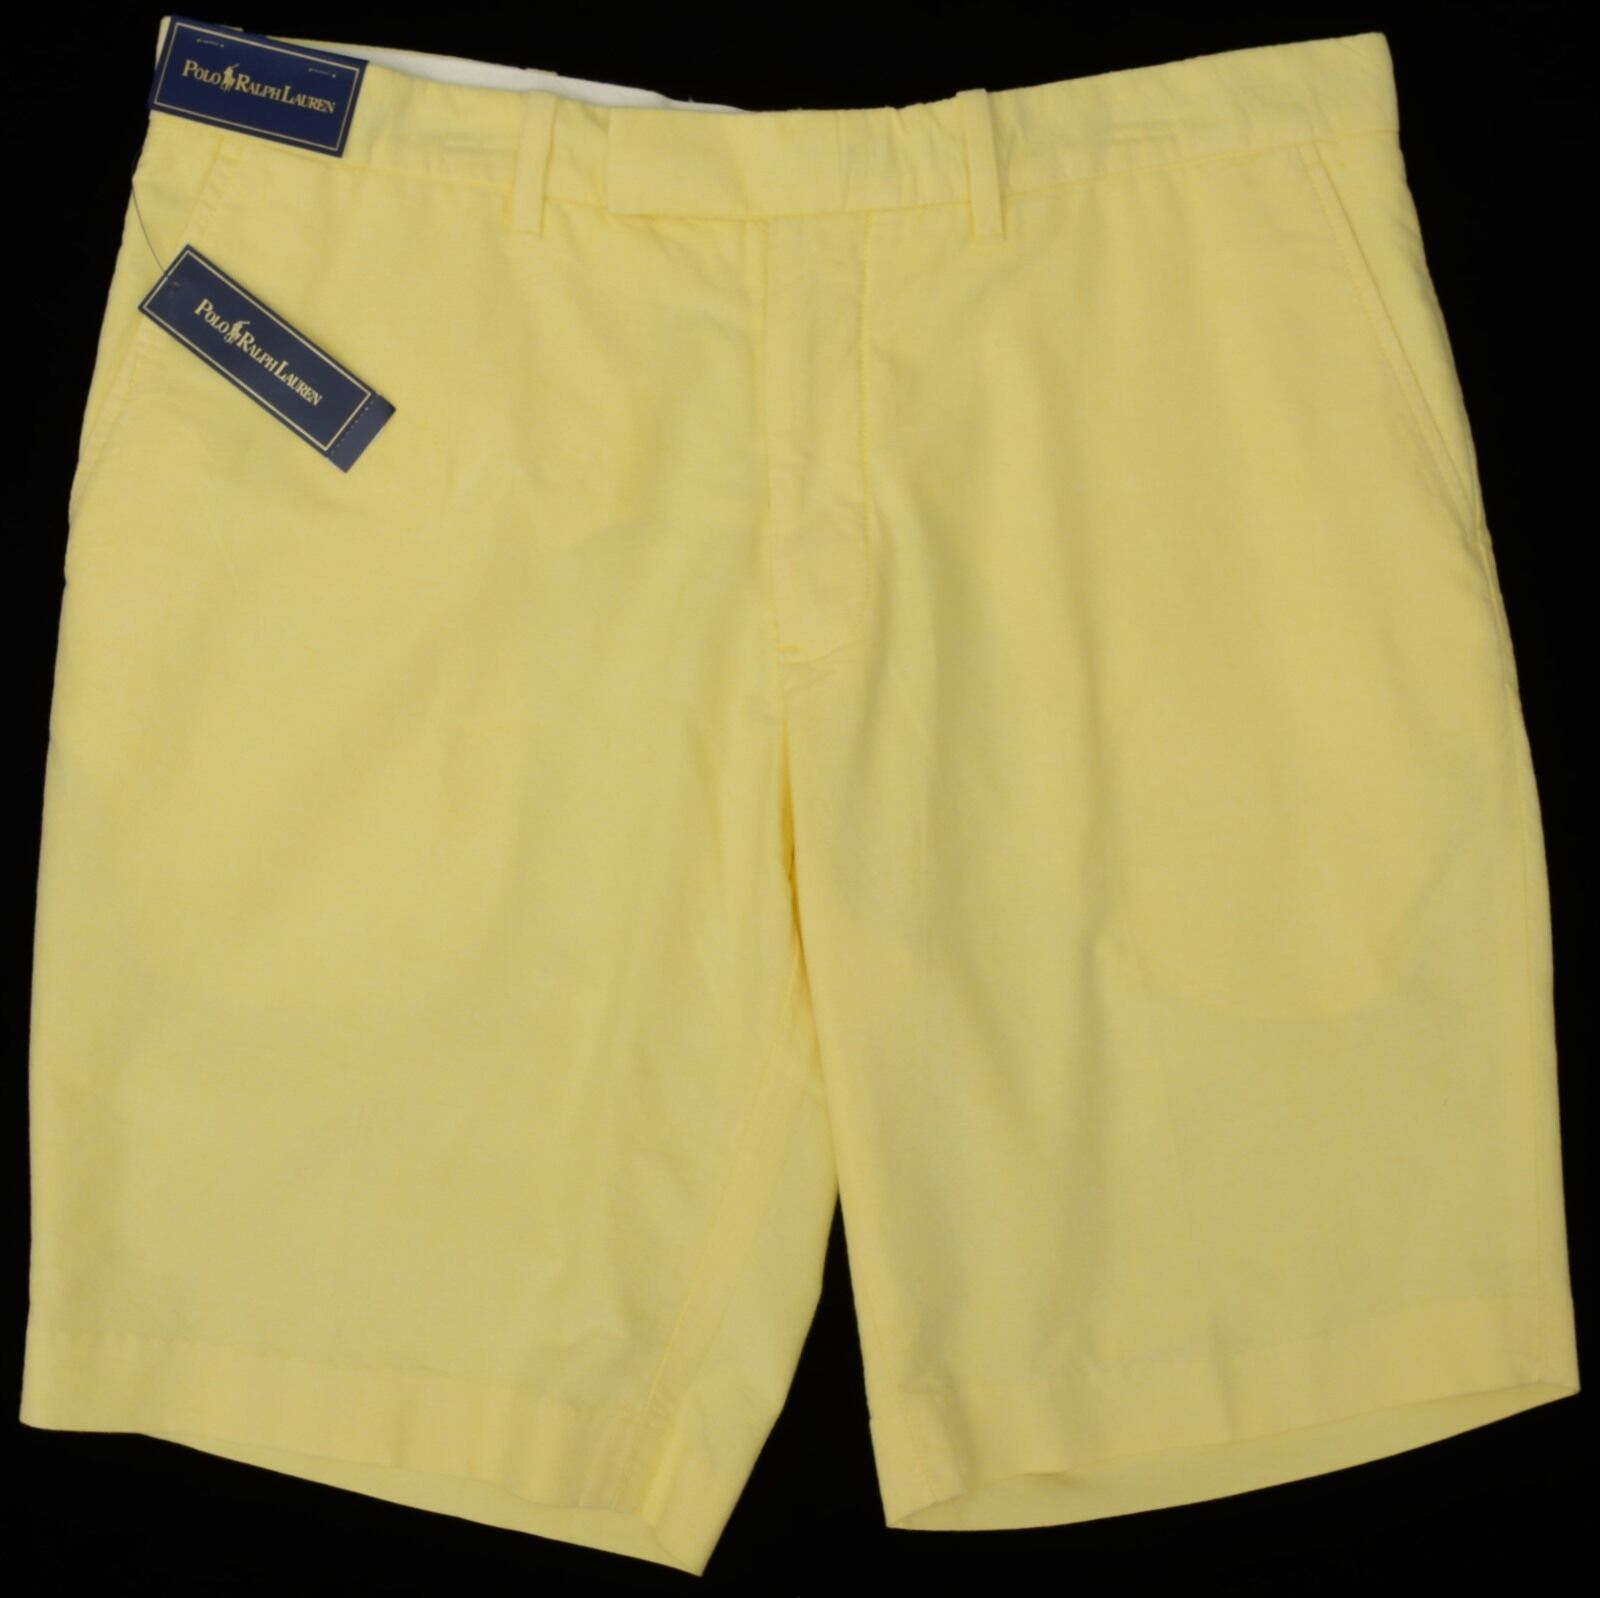 Men's POLO RALPH LAUREN Yellow Oxford Shorts 38 NWT NEW Classic